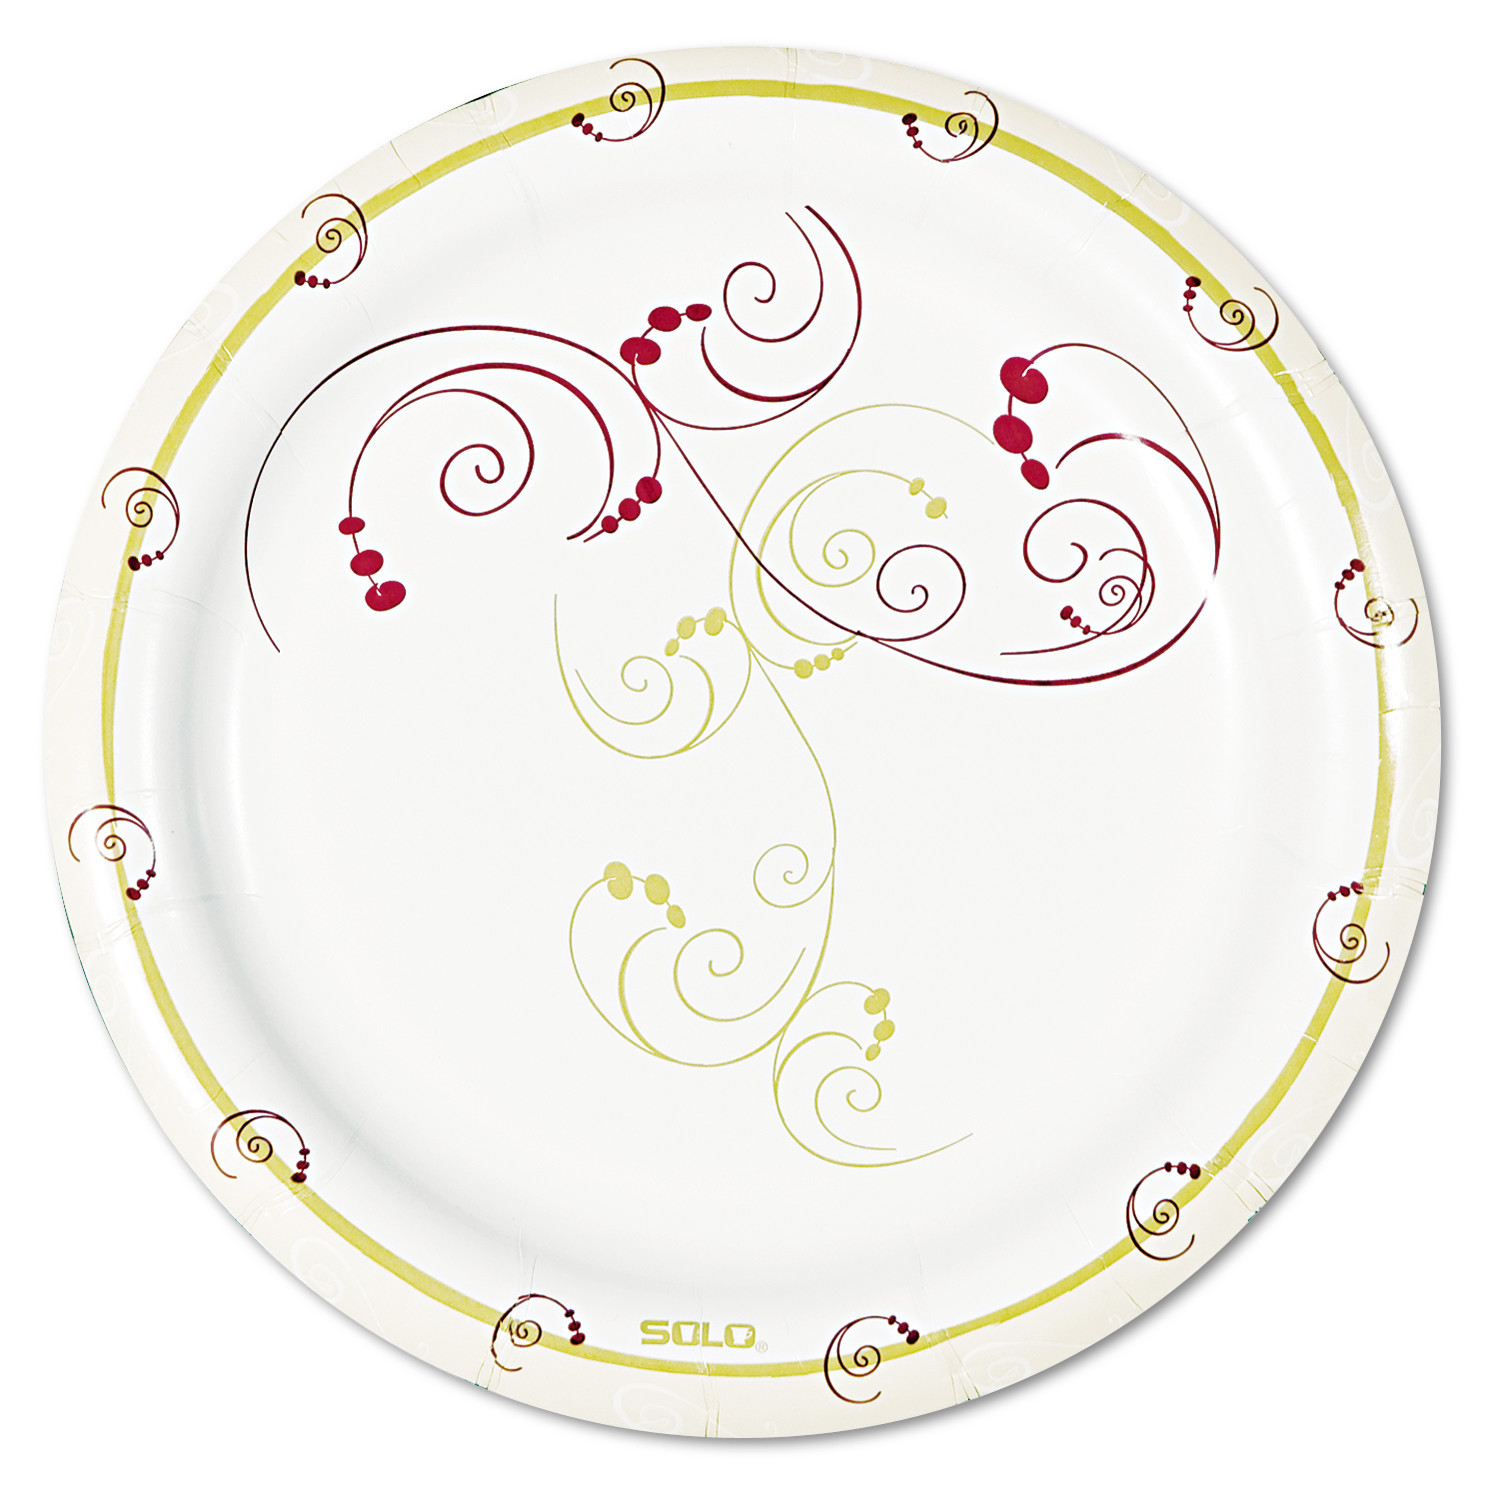 "Solo Table Ware - 6"" Diameter Plate - Paper Plate - Symphony - Tan, Natural - 1000 Piece(s) / Carton"